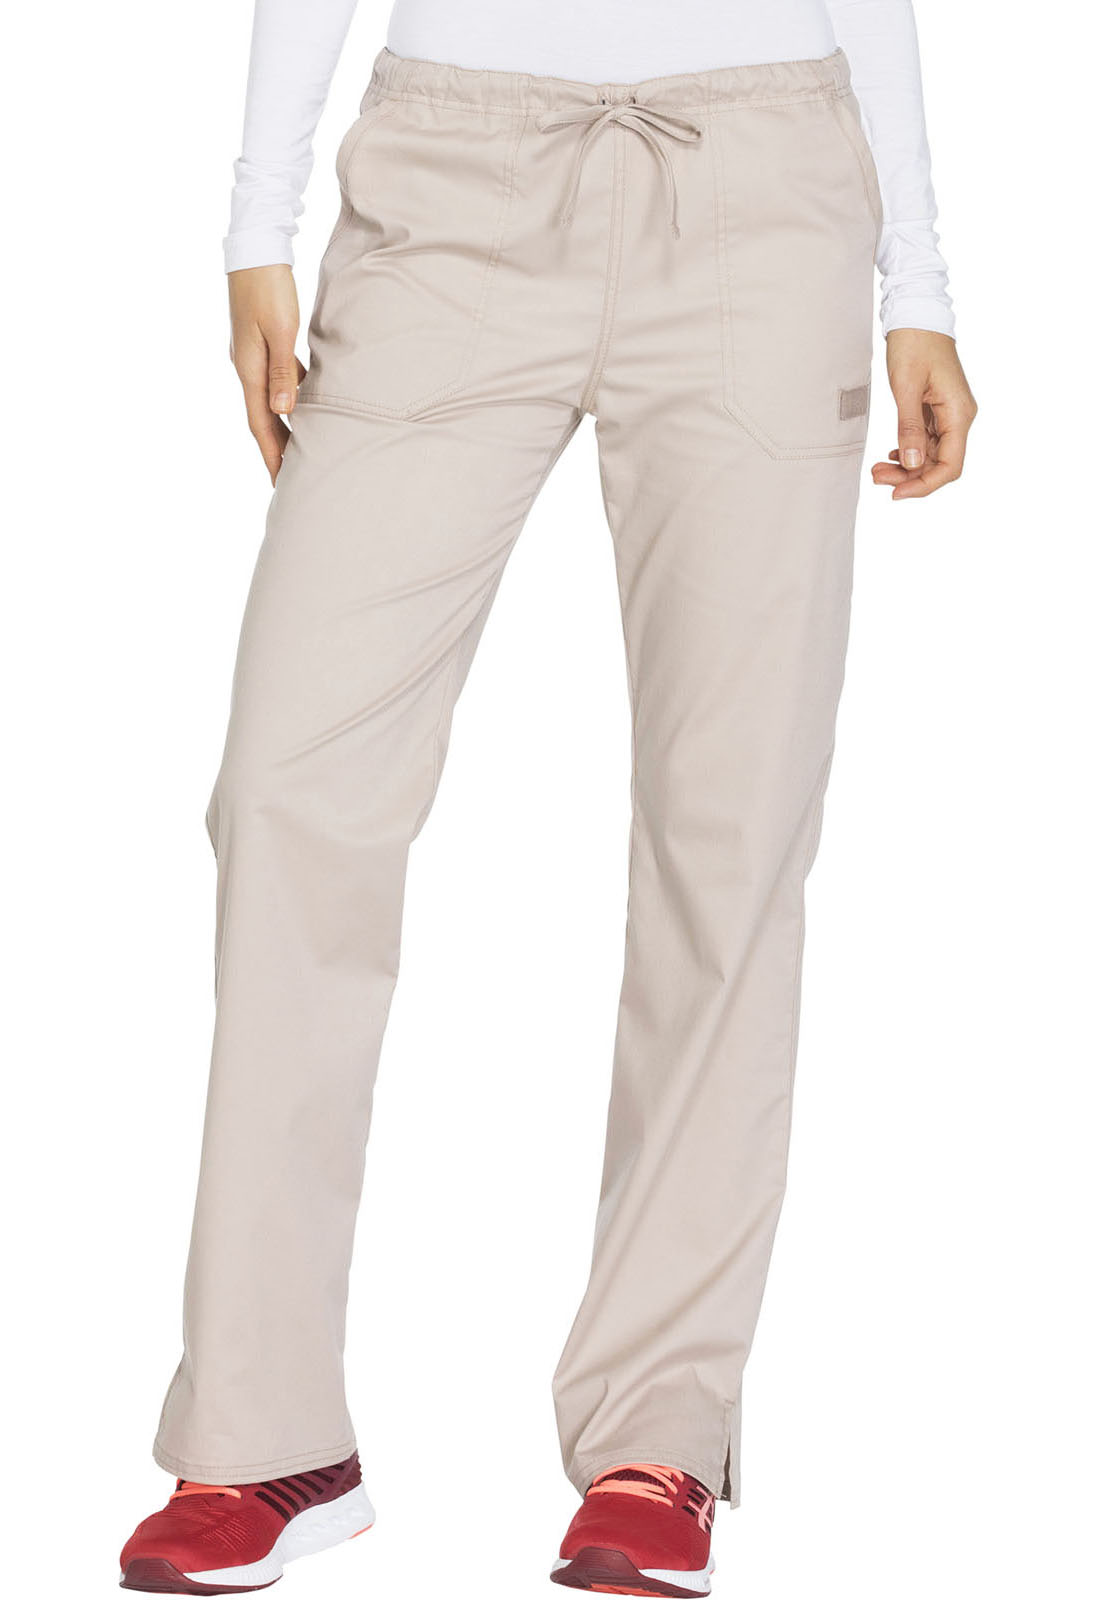 e6d096901ed Cherokee Workwear. WW Core Stretch Mid Rise Straight Leg Drawstring Pant in  Khaki (Petite)